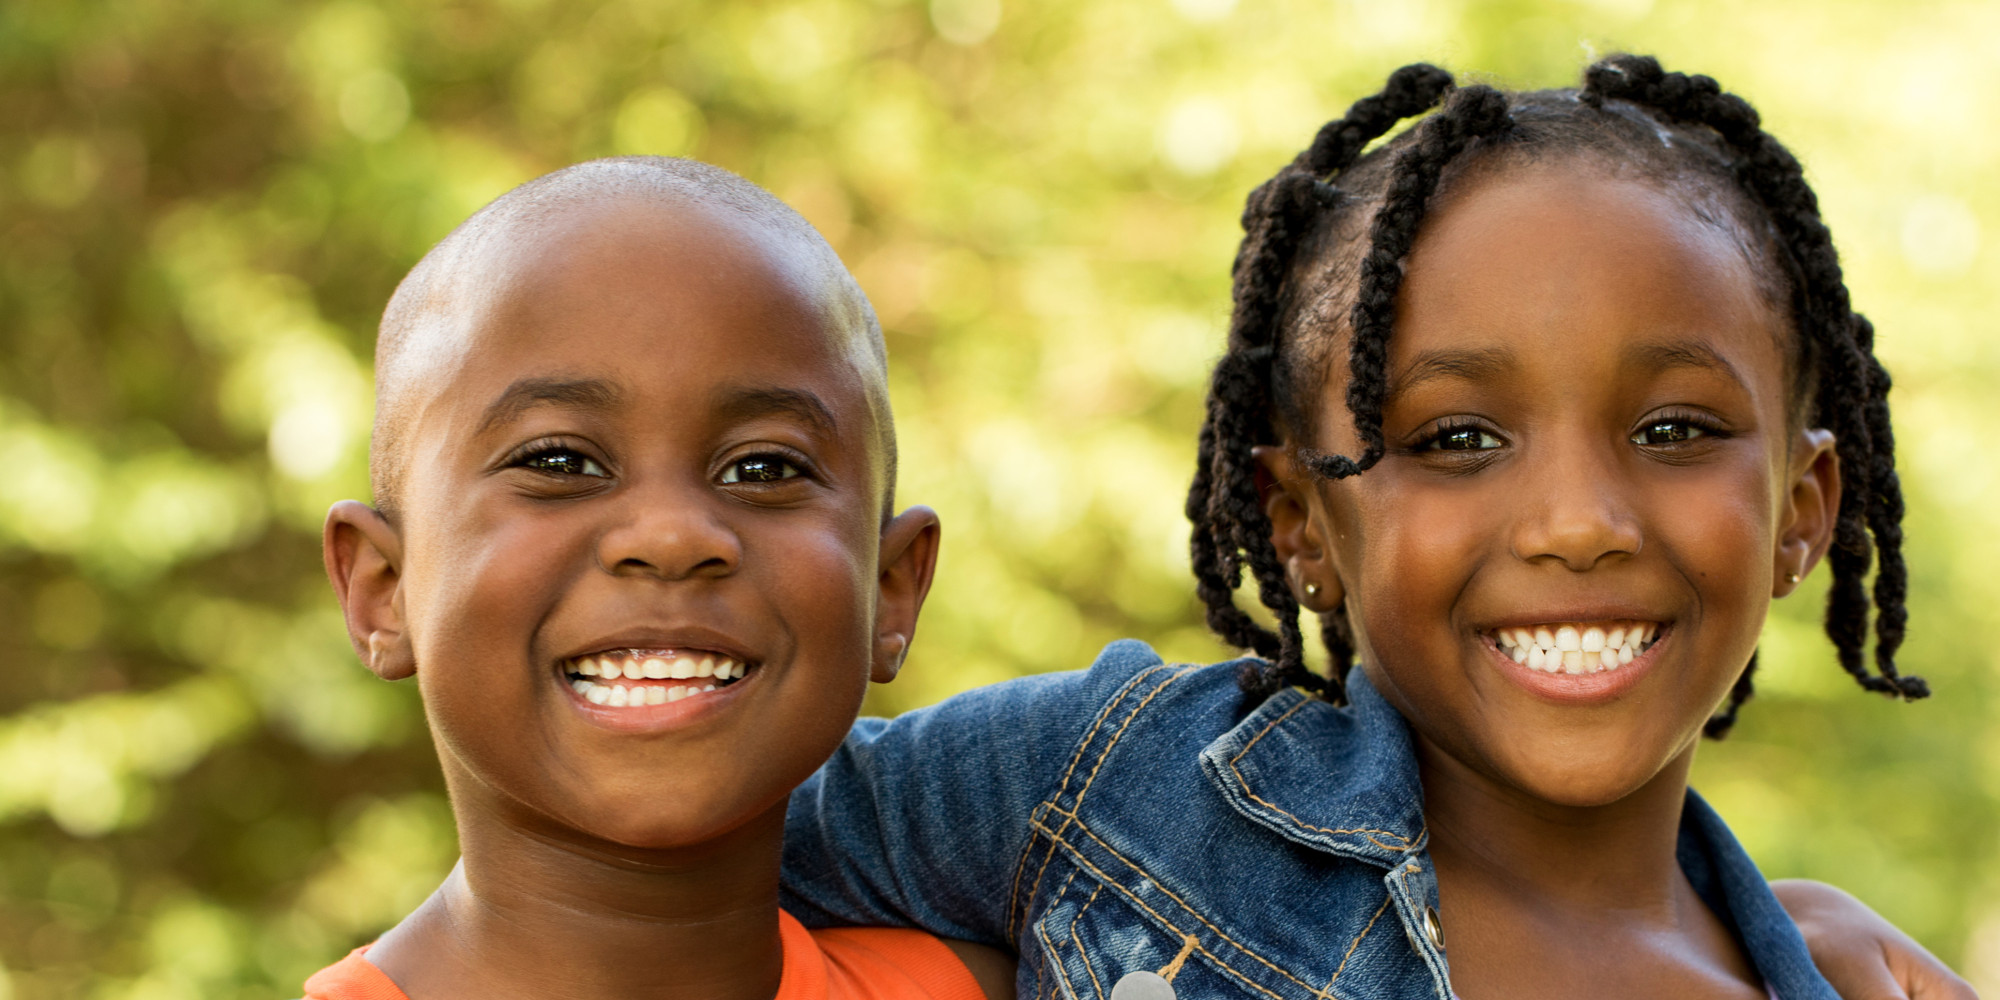 It's About The 100% Of Black Children: The 94 % In ...